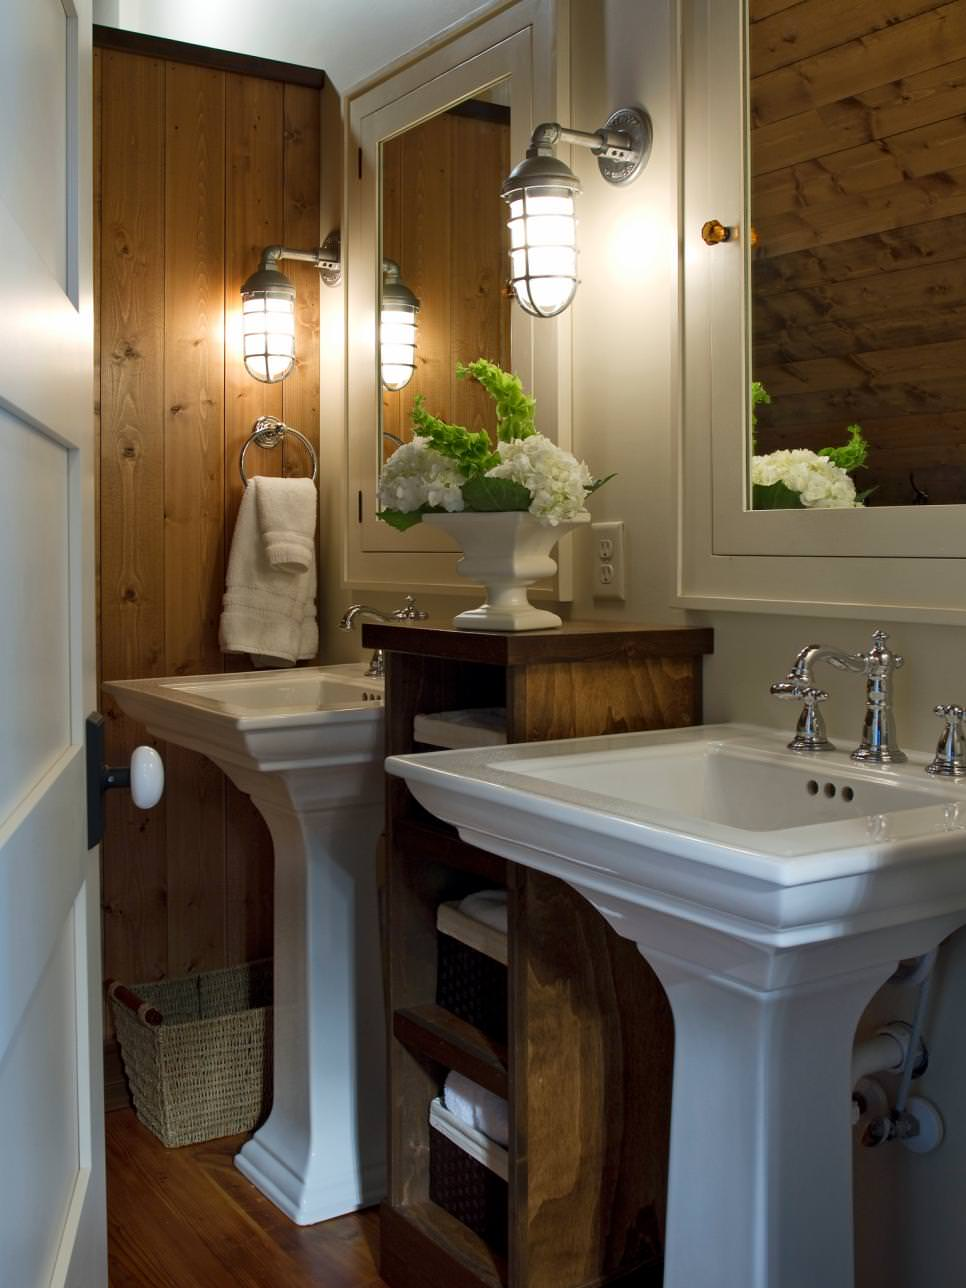 24+ Bathroom Pedestal Sinks Ideas, Designs